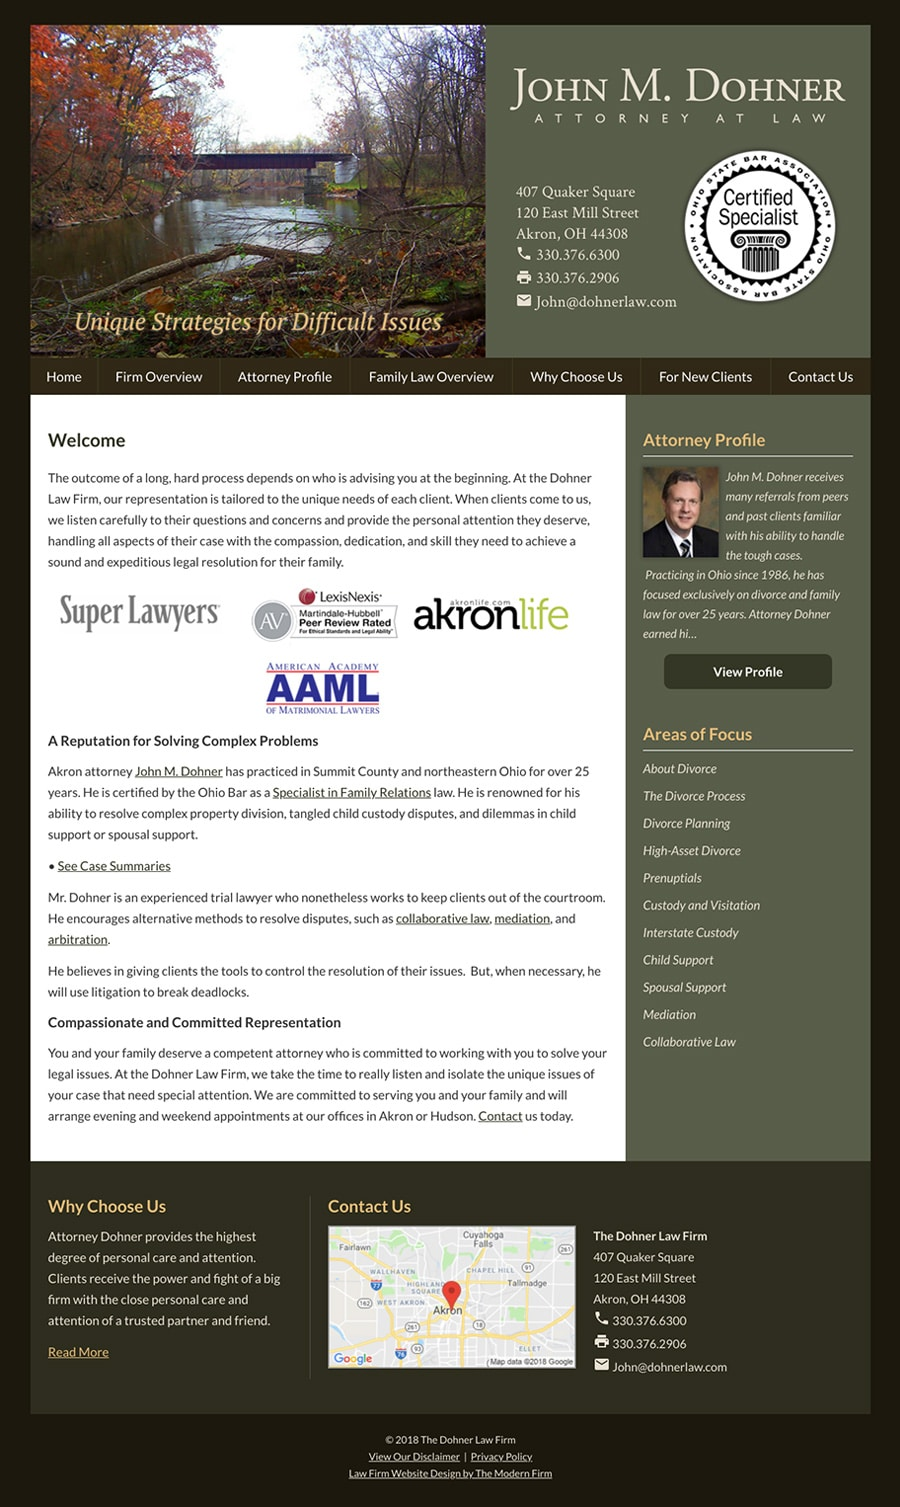 Law Firm Website Design for John M. Dohner